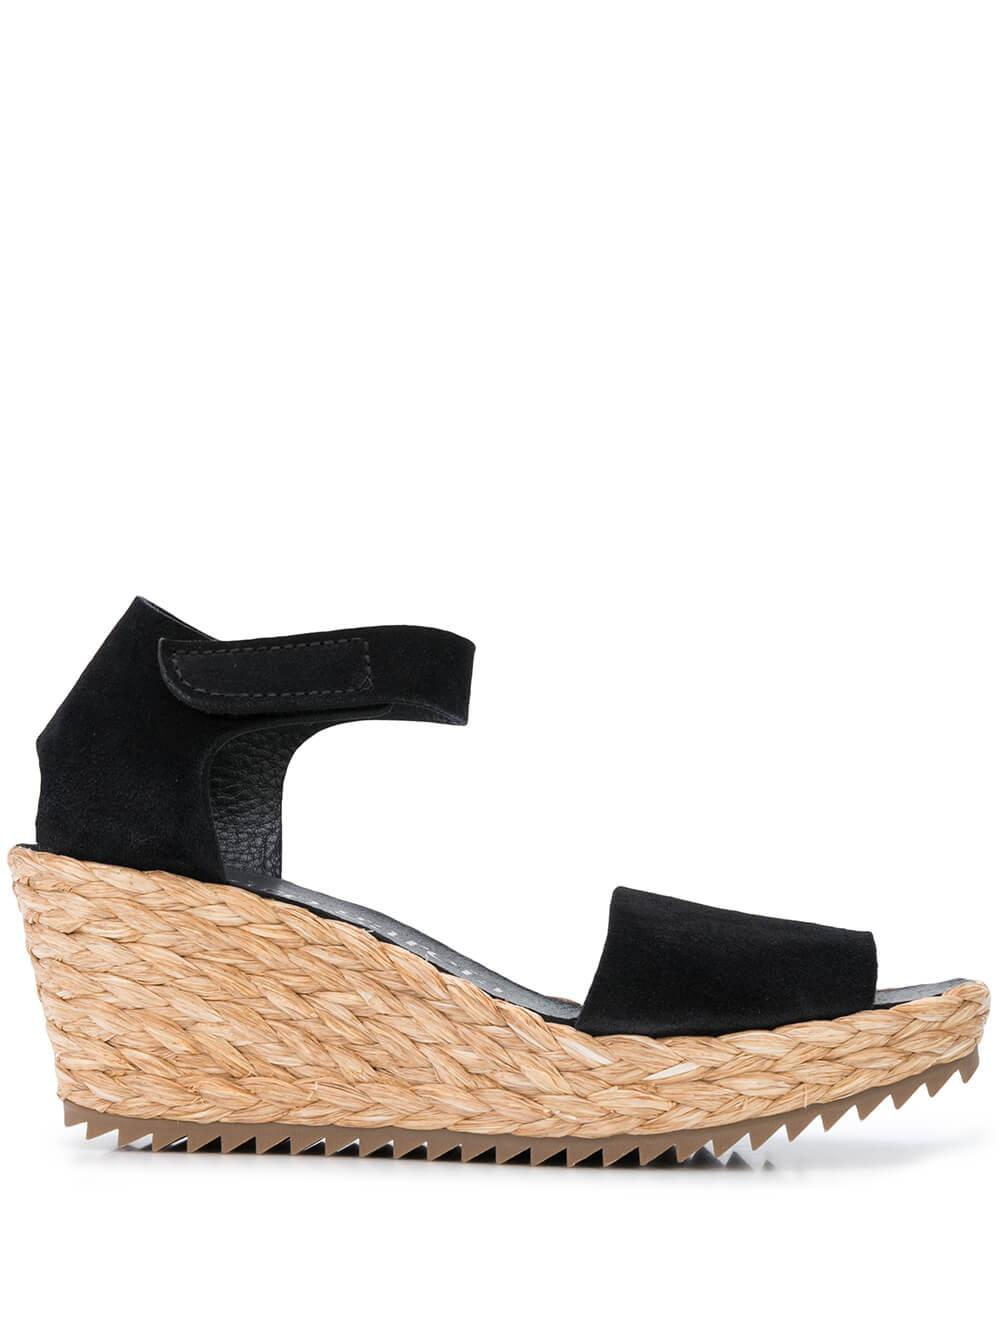 Espadrille Wedge With Ankle Strap